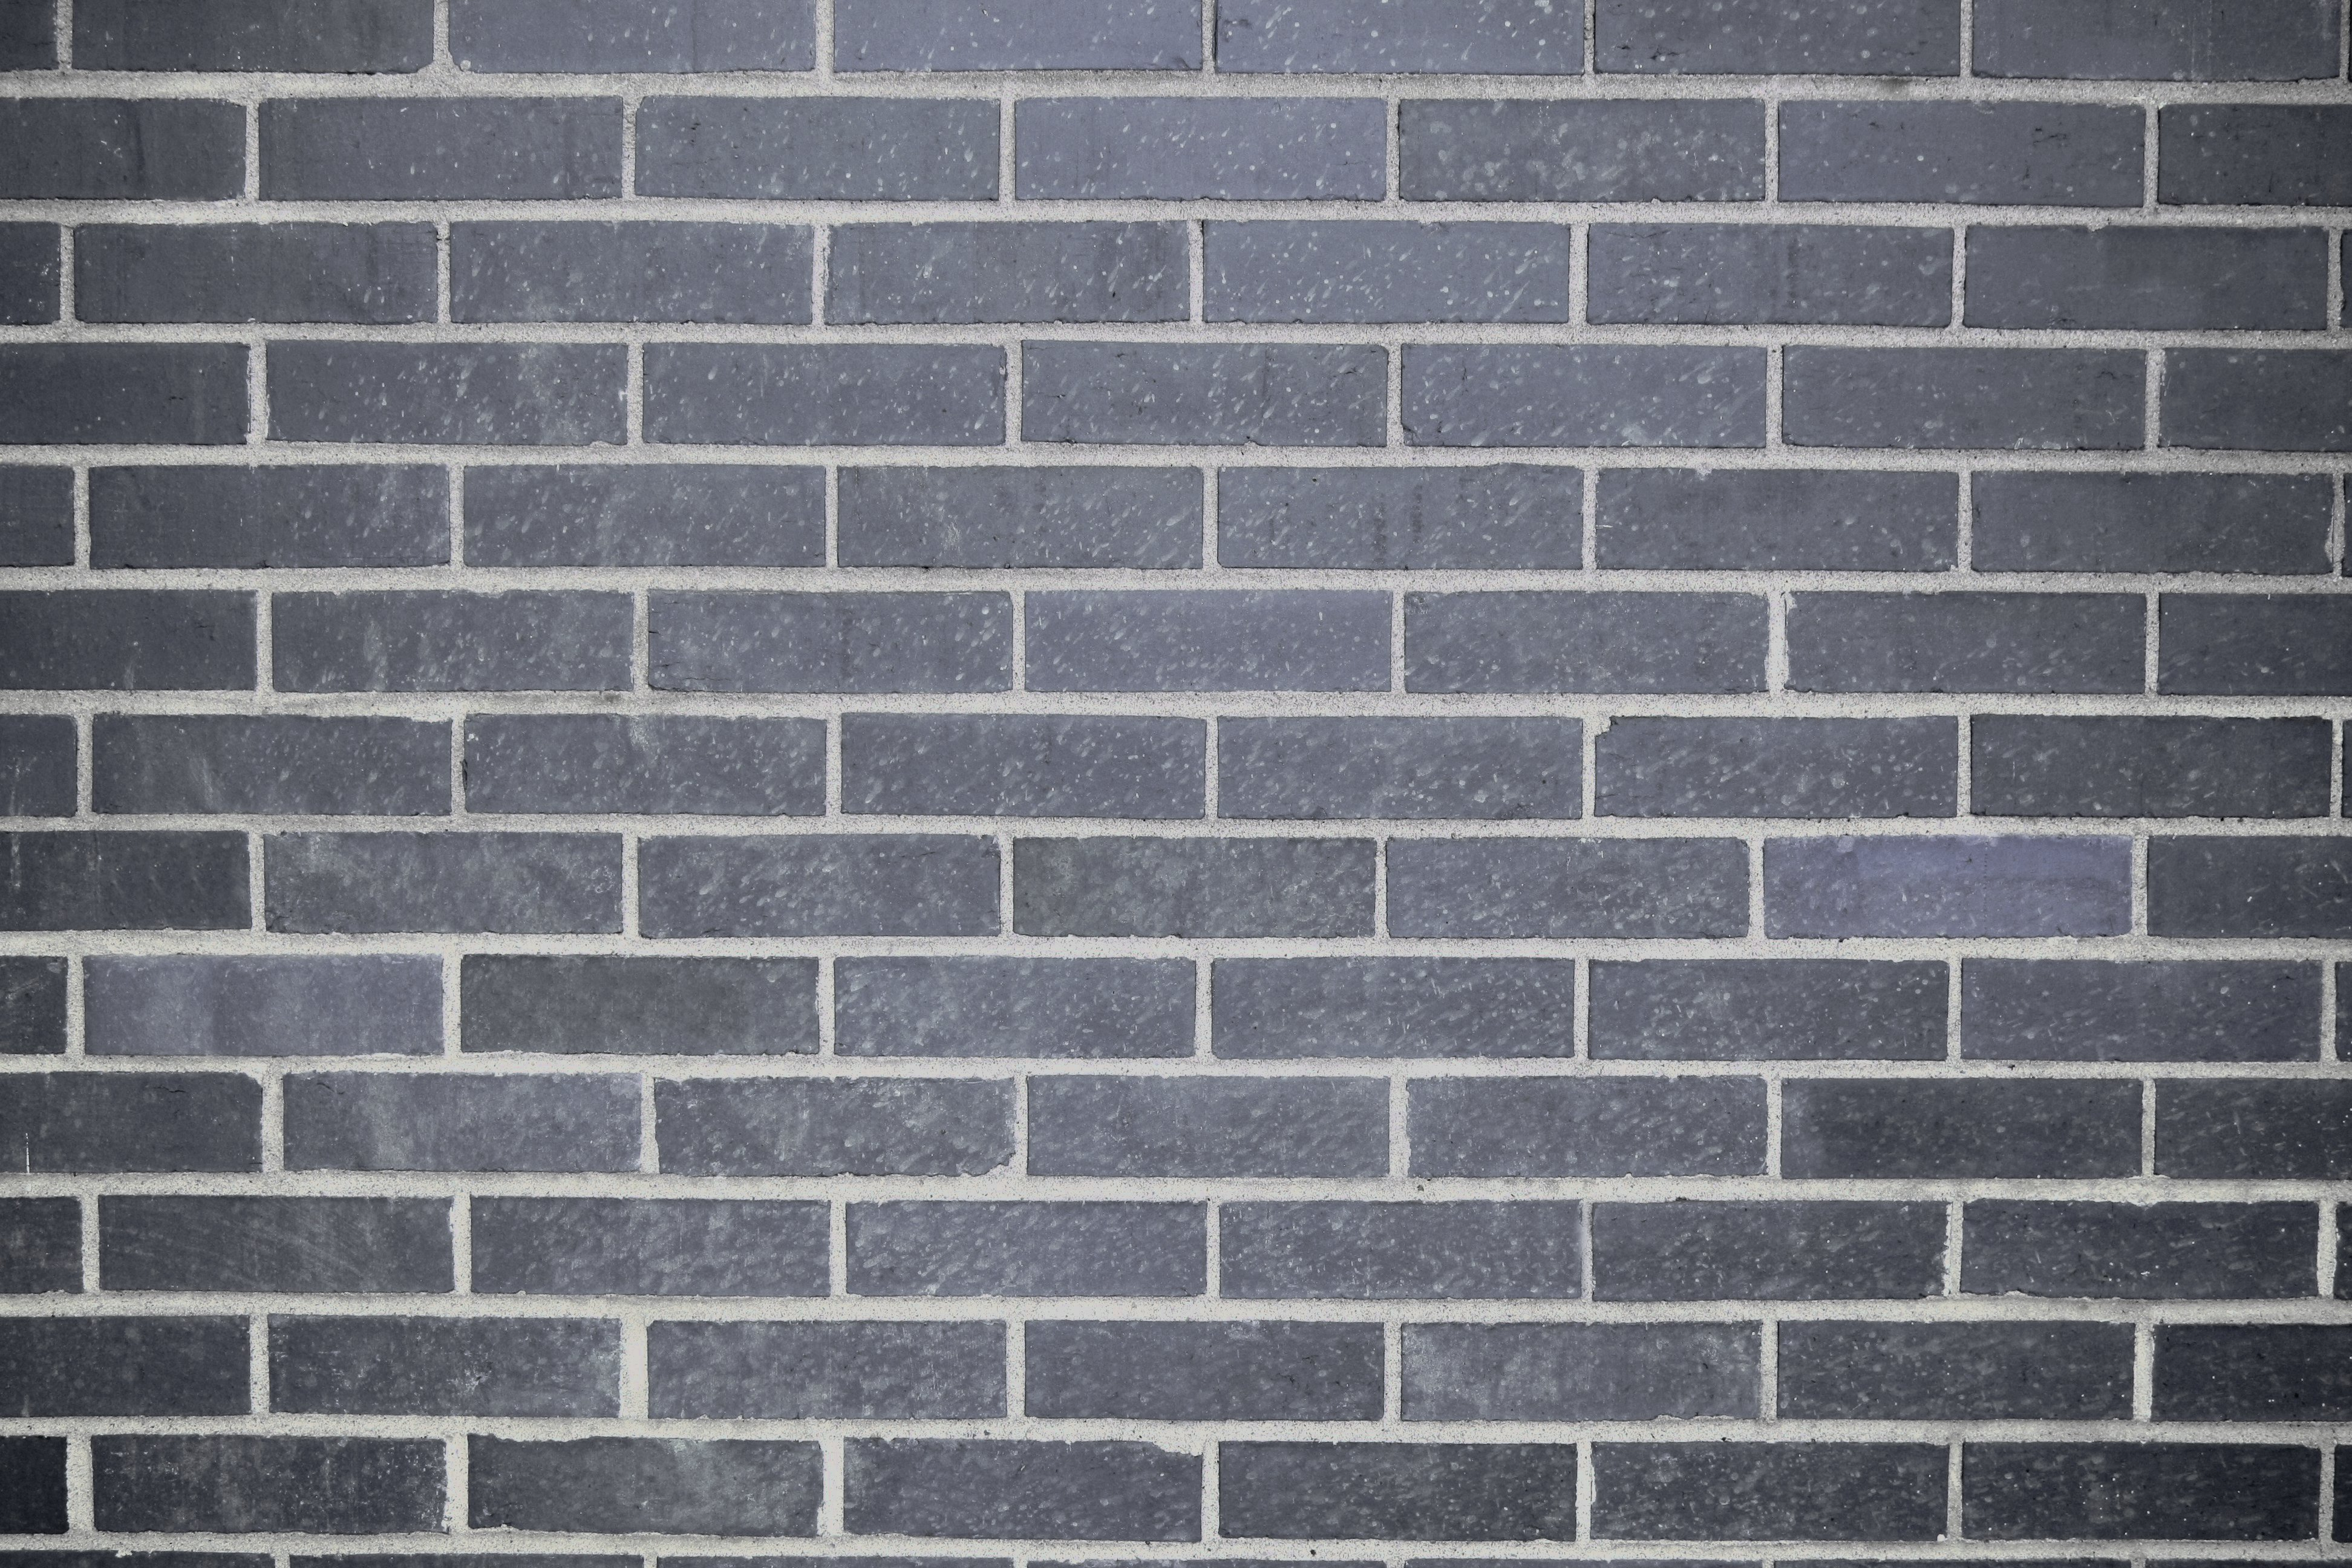 3888x2592 Gray Brick Wall Texture Picture Free Photograph Photos Public